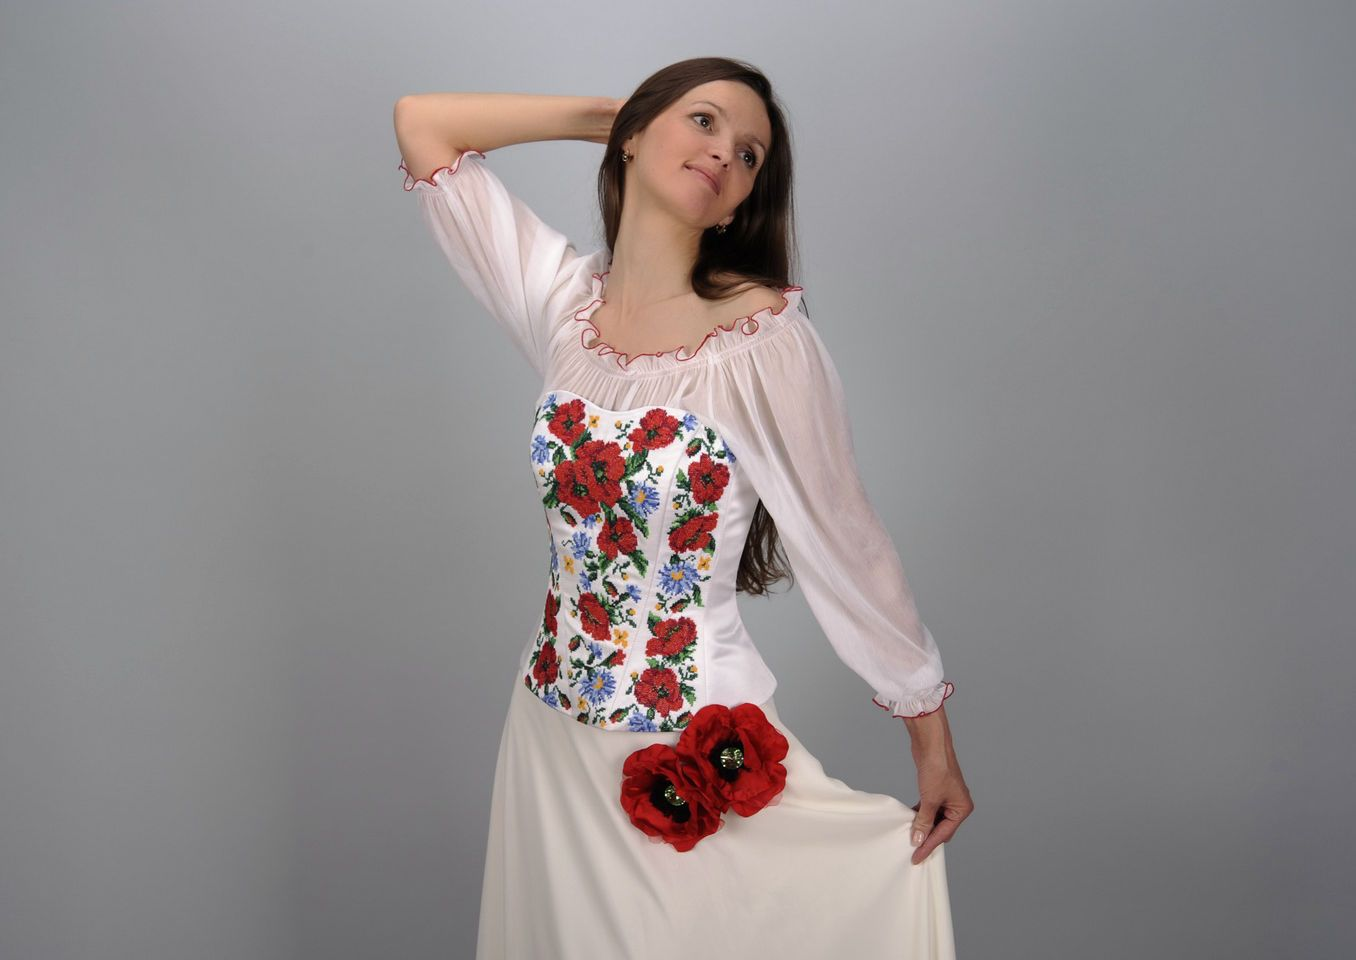 clothes Wedding ensemble in ethnic style - MADEheart.com